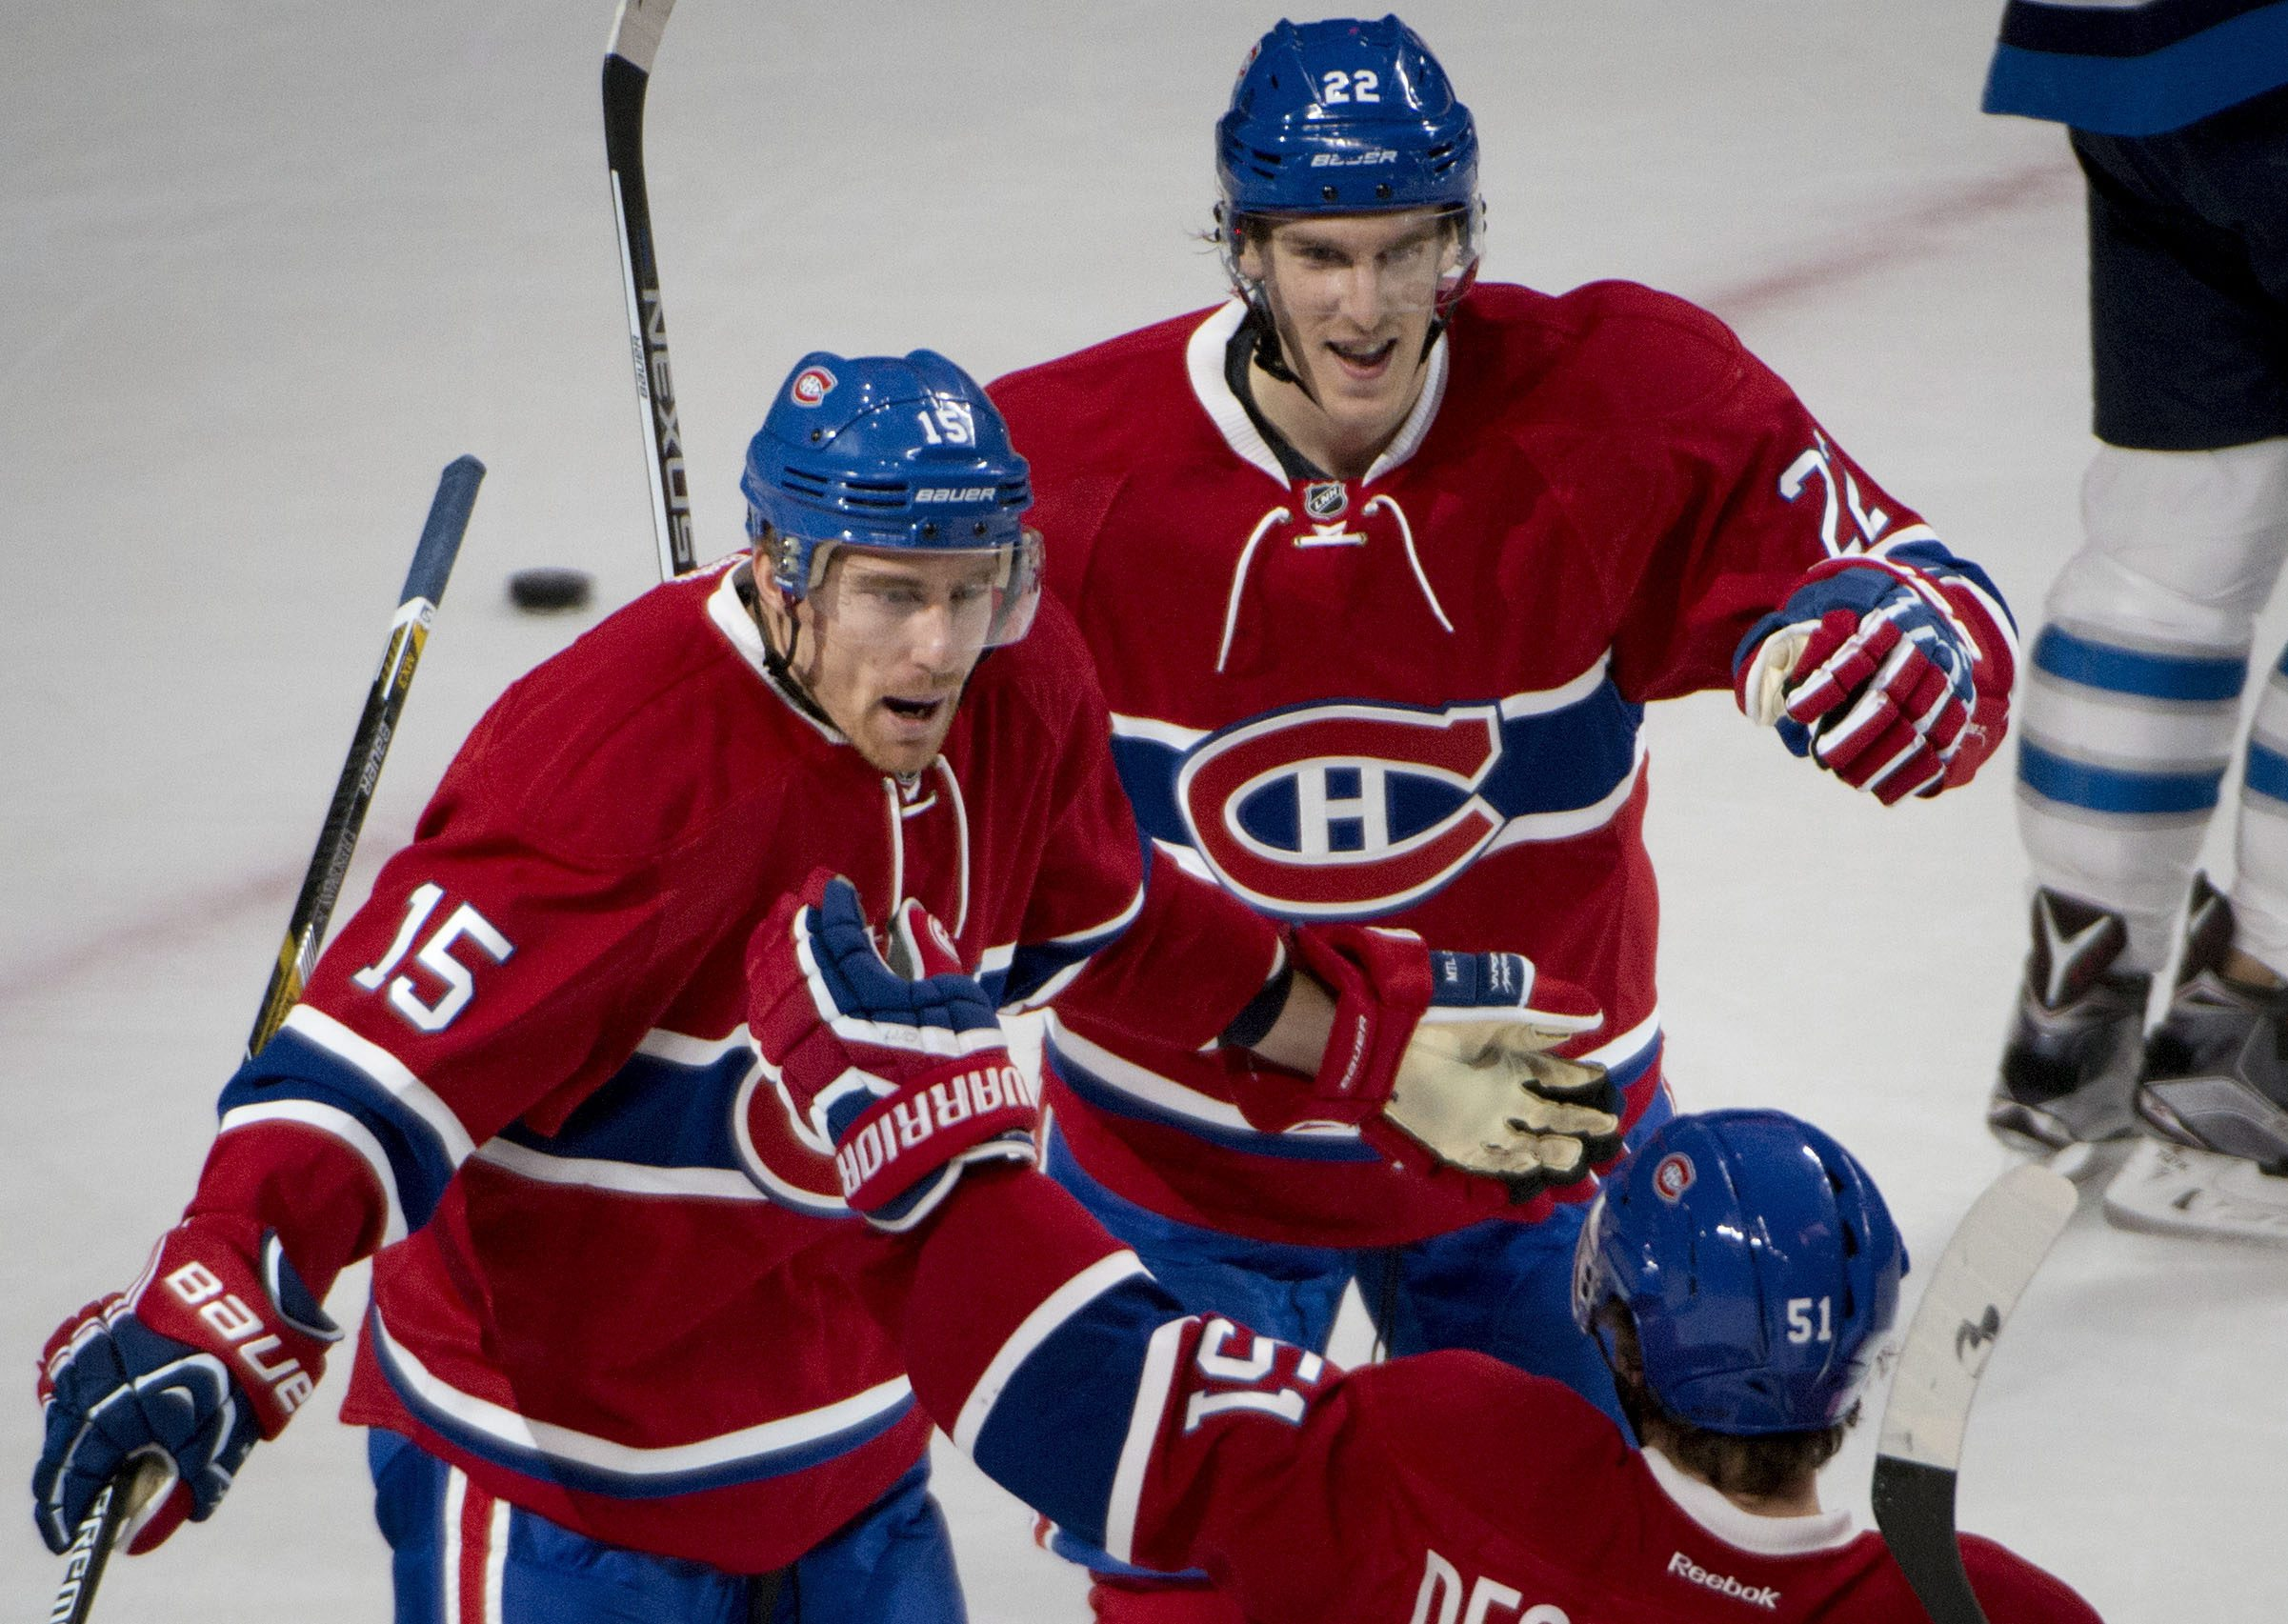 Montreal Canadiens' Tomas Fleischmann (15) celebrates his first period goal against the Winnipeg Jets during NHL action, Sunday, Nov. 1, 2015 in Montreal. (Peter McCabe/The Canadian Press via AP)